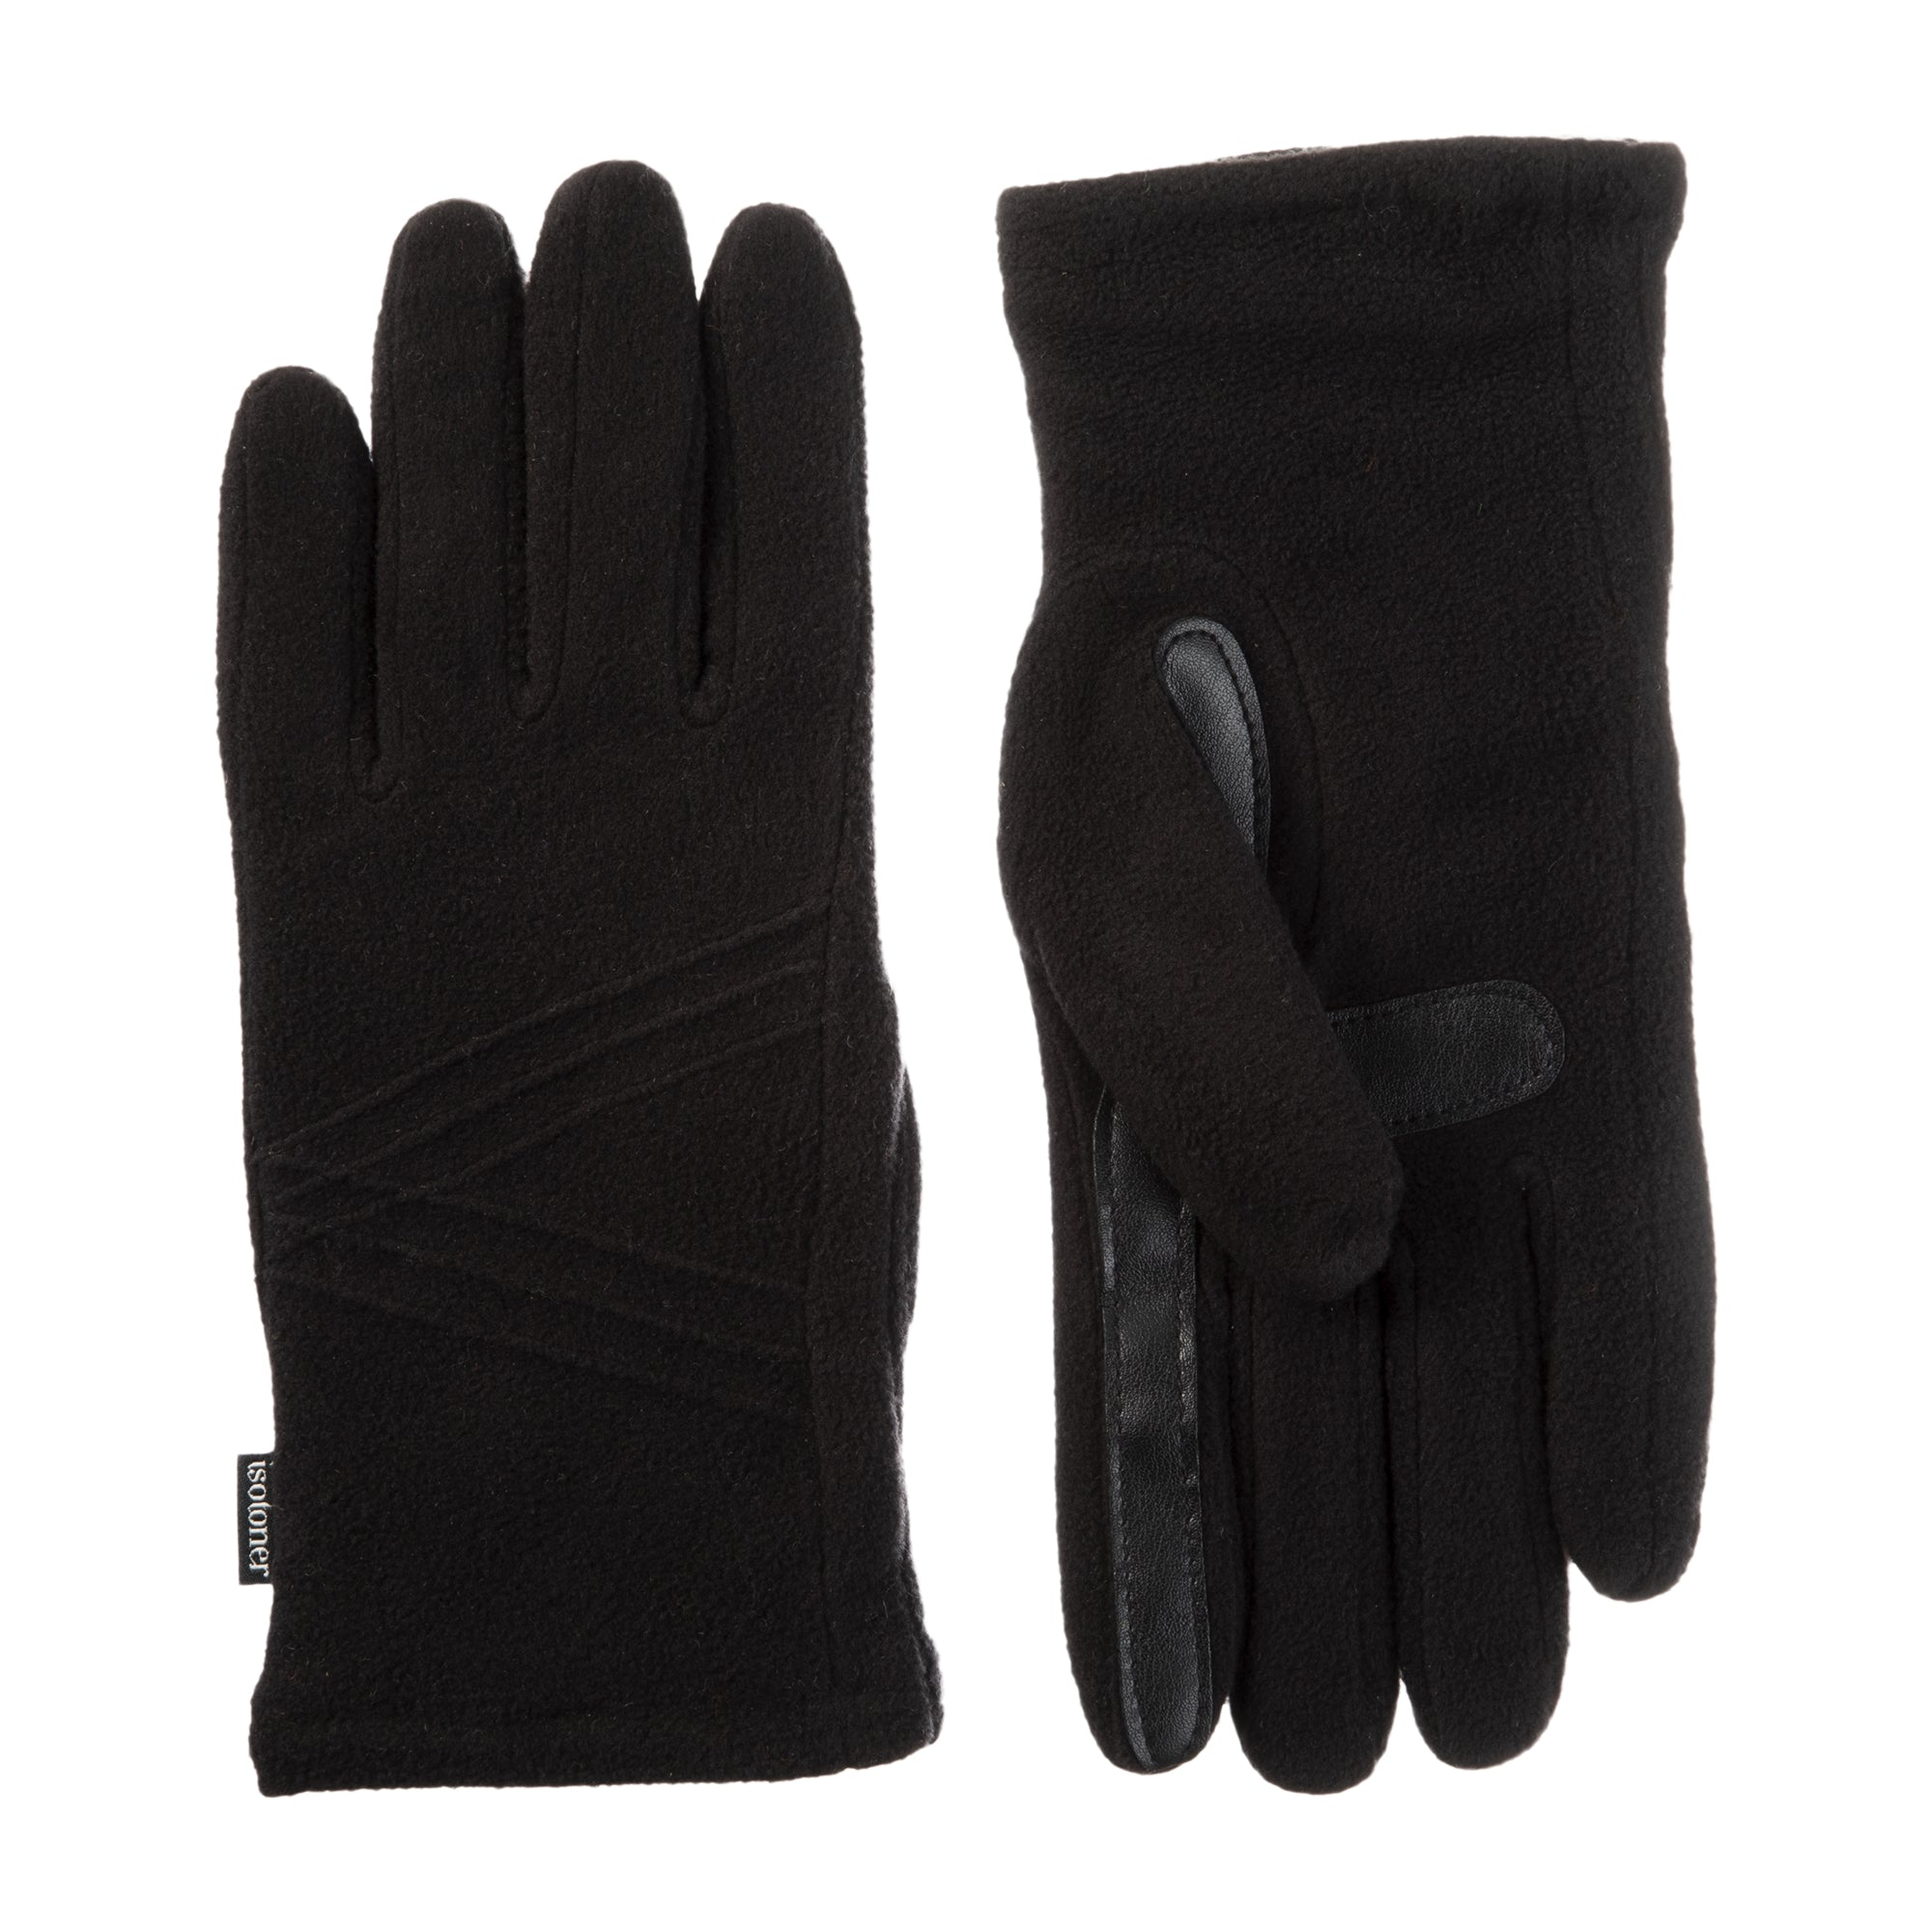 Women's Fleece Touchscreen Gloves Black 1